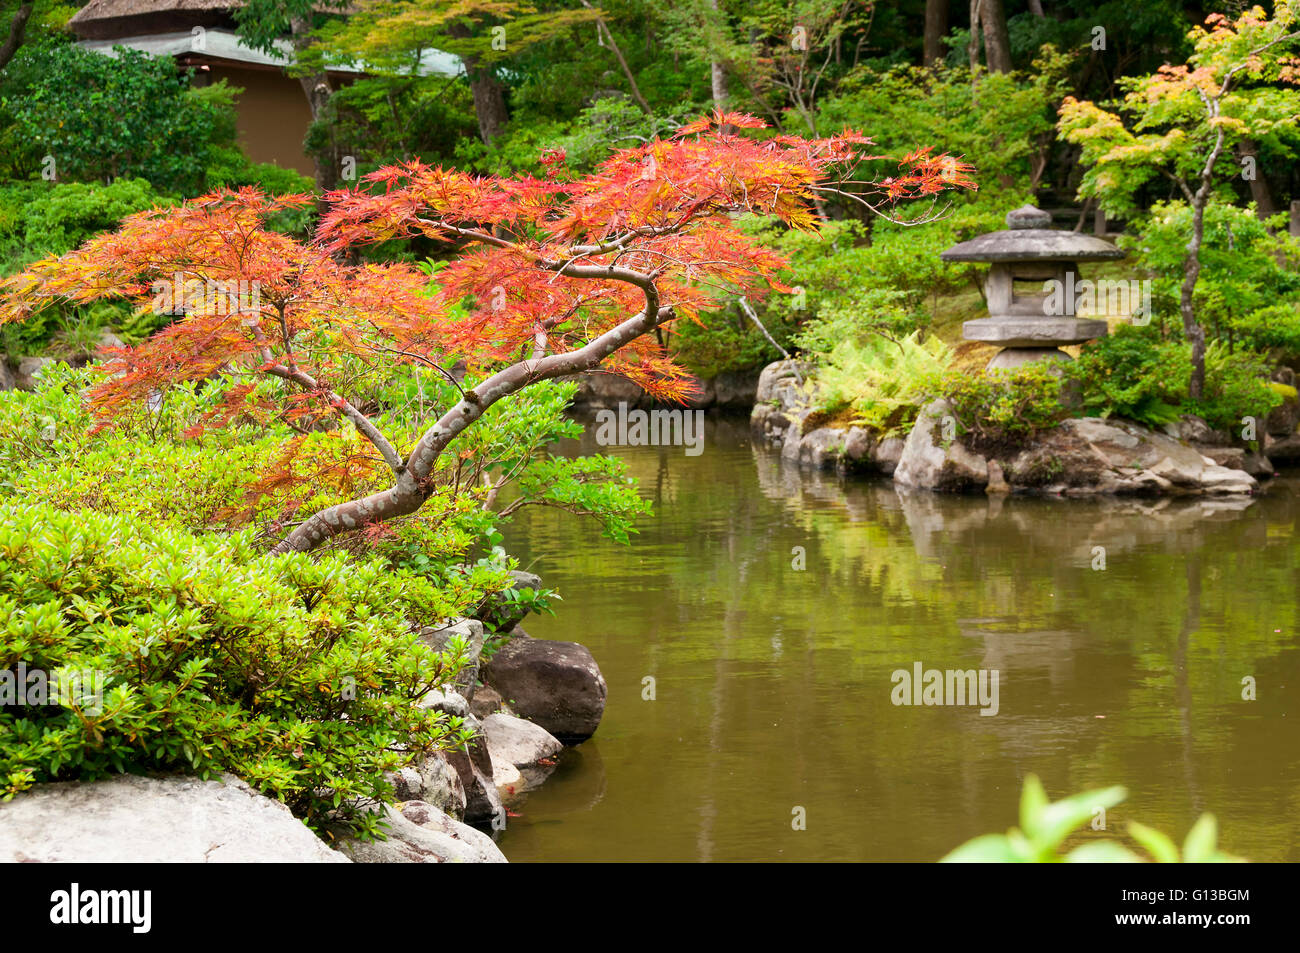 Japanese lantern near the pond - Stock Image